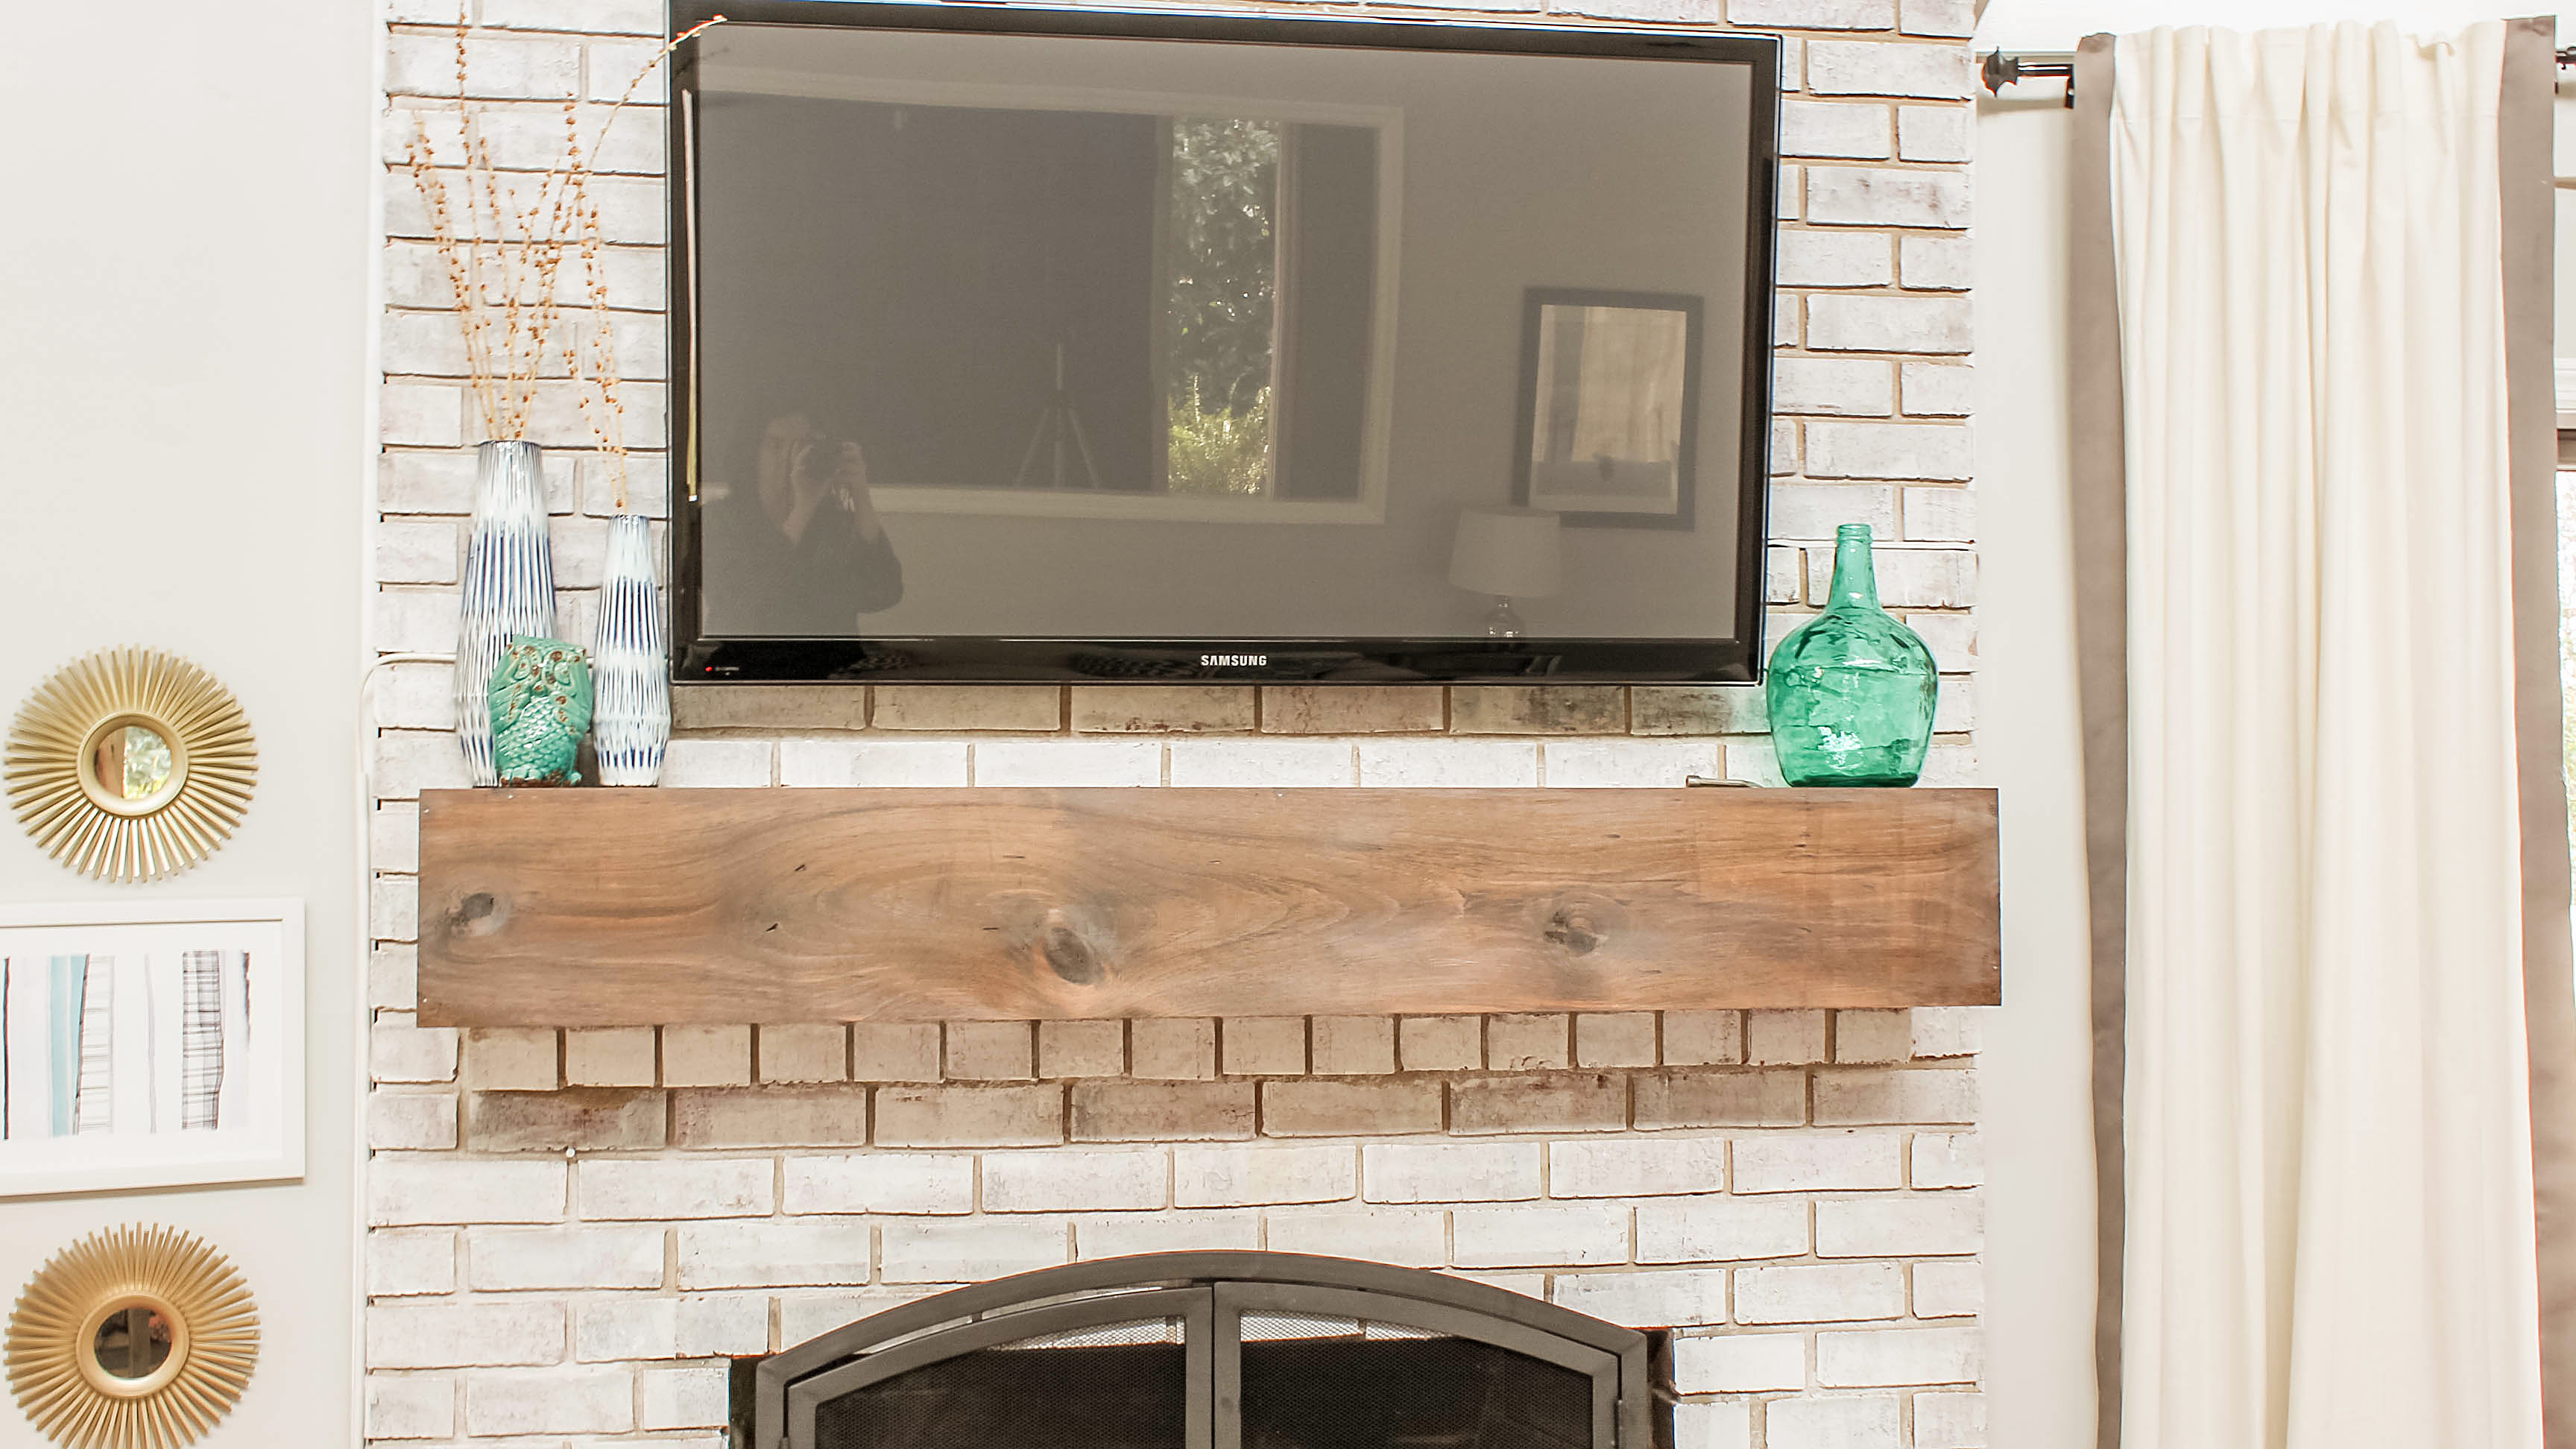 Mount A Tv Over Brick Fireplace, Can You Mount Tv To Brick Fireplace